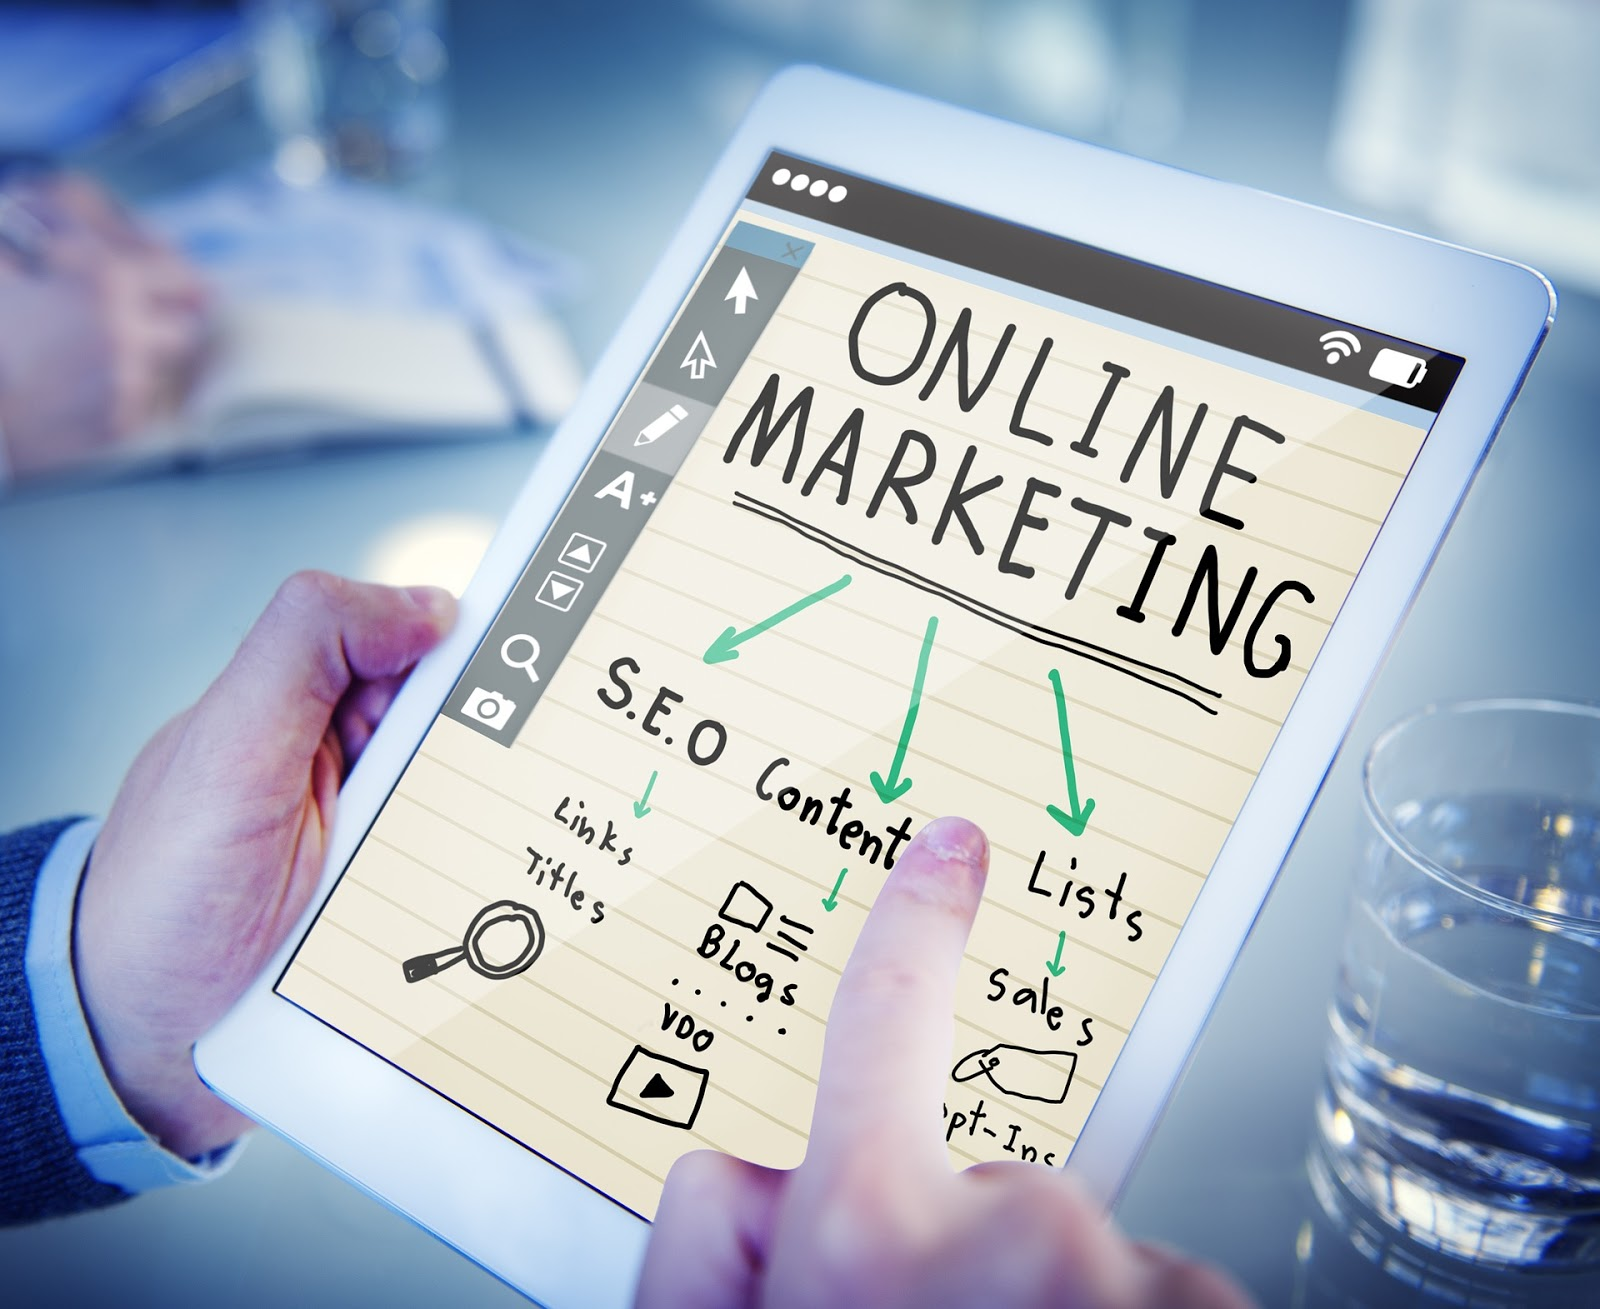 Online Marketing strategies for a small law firm